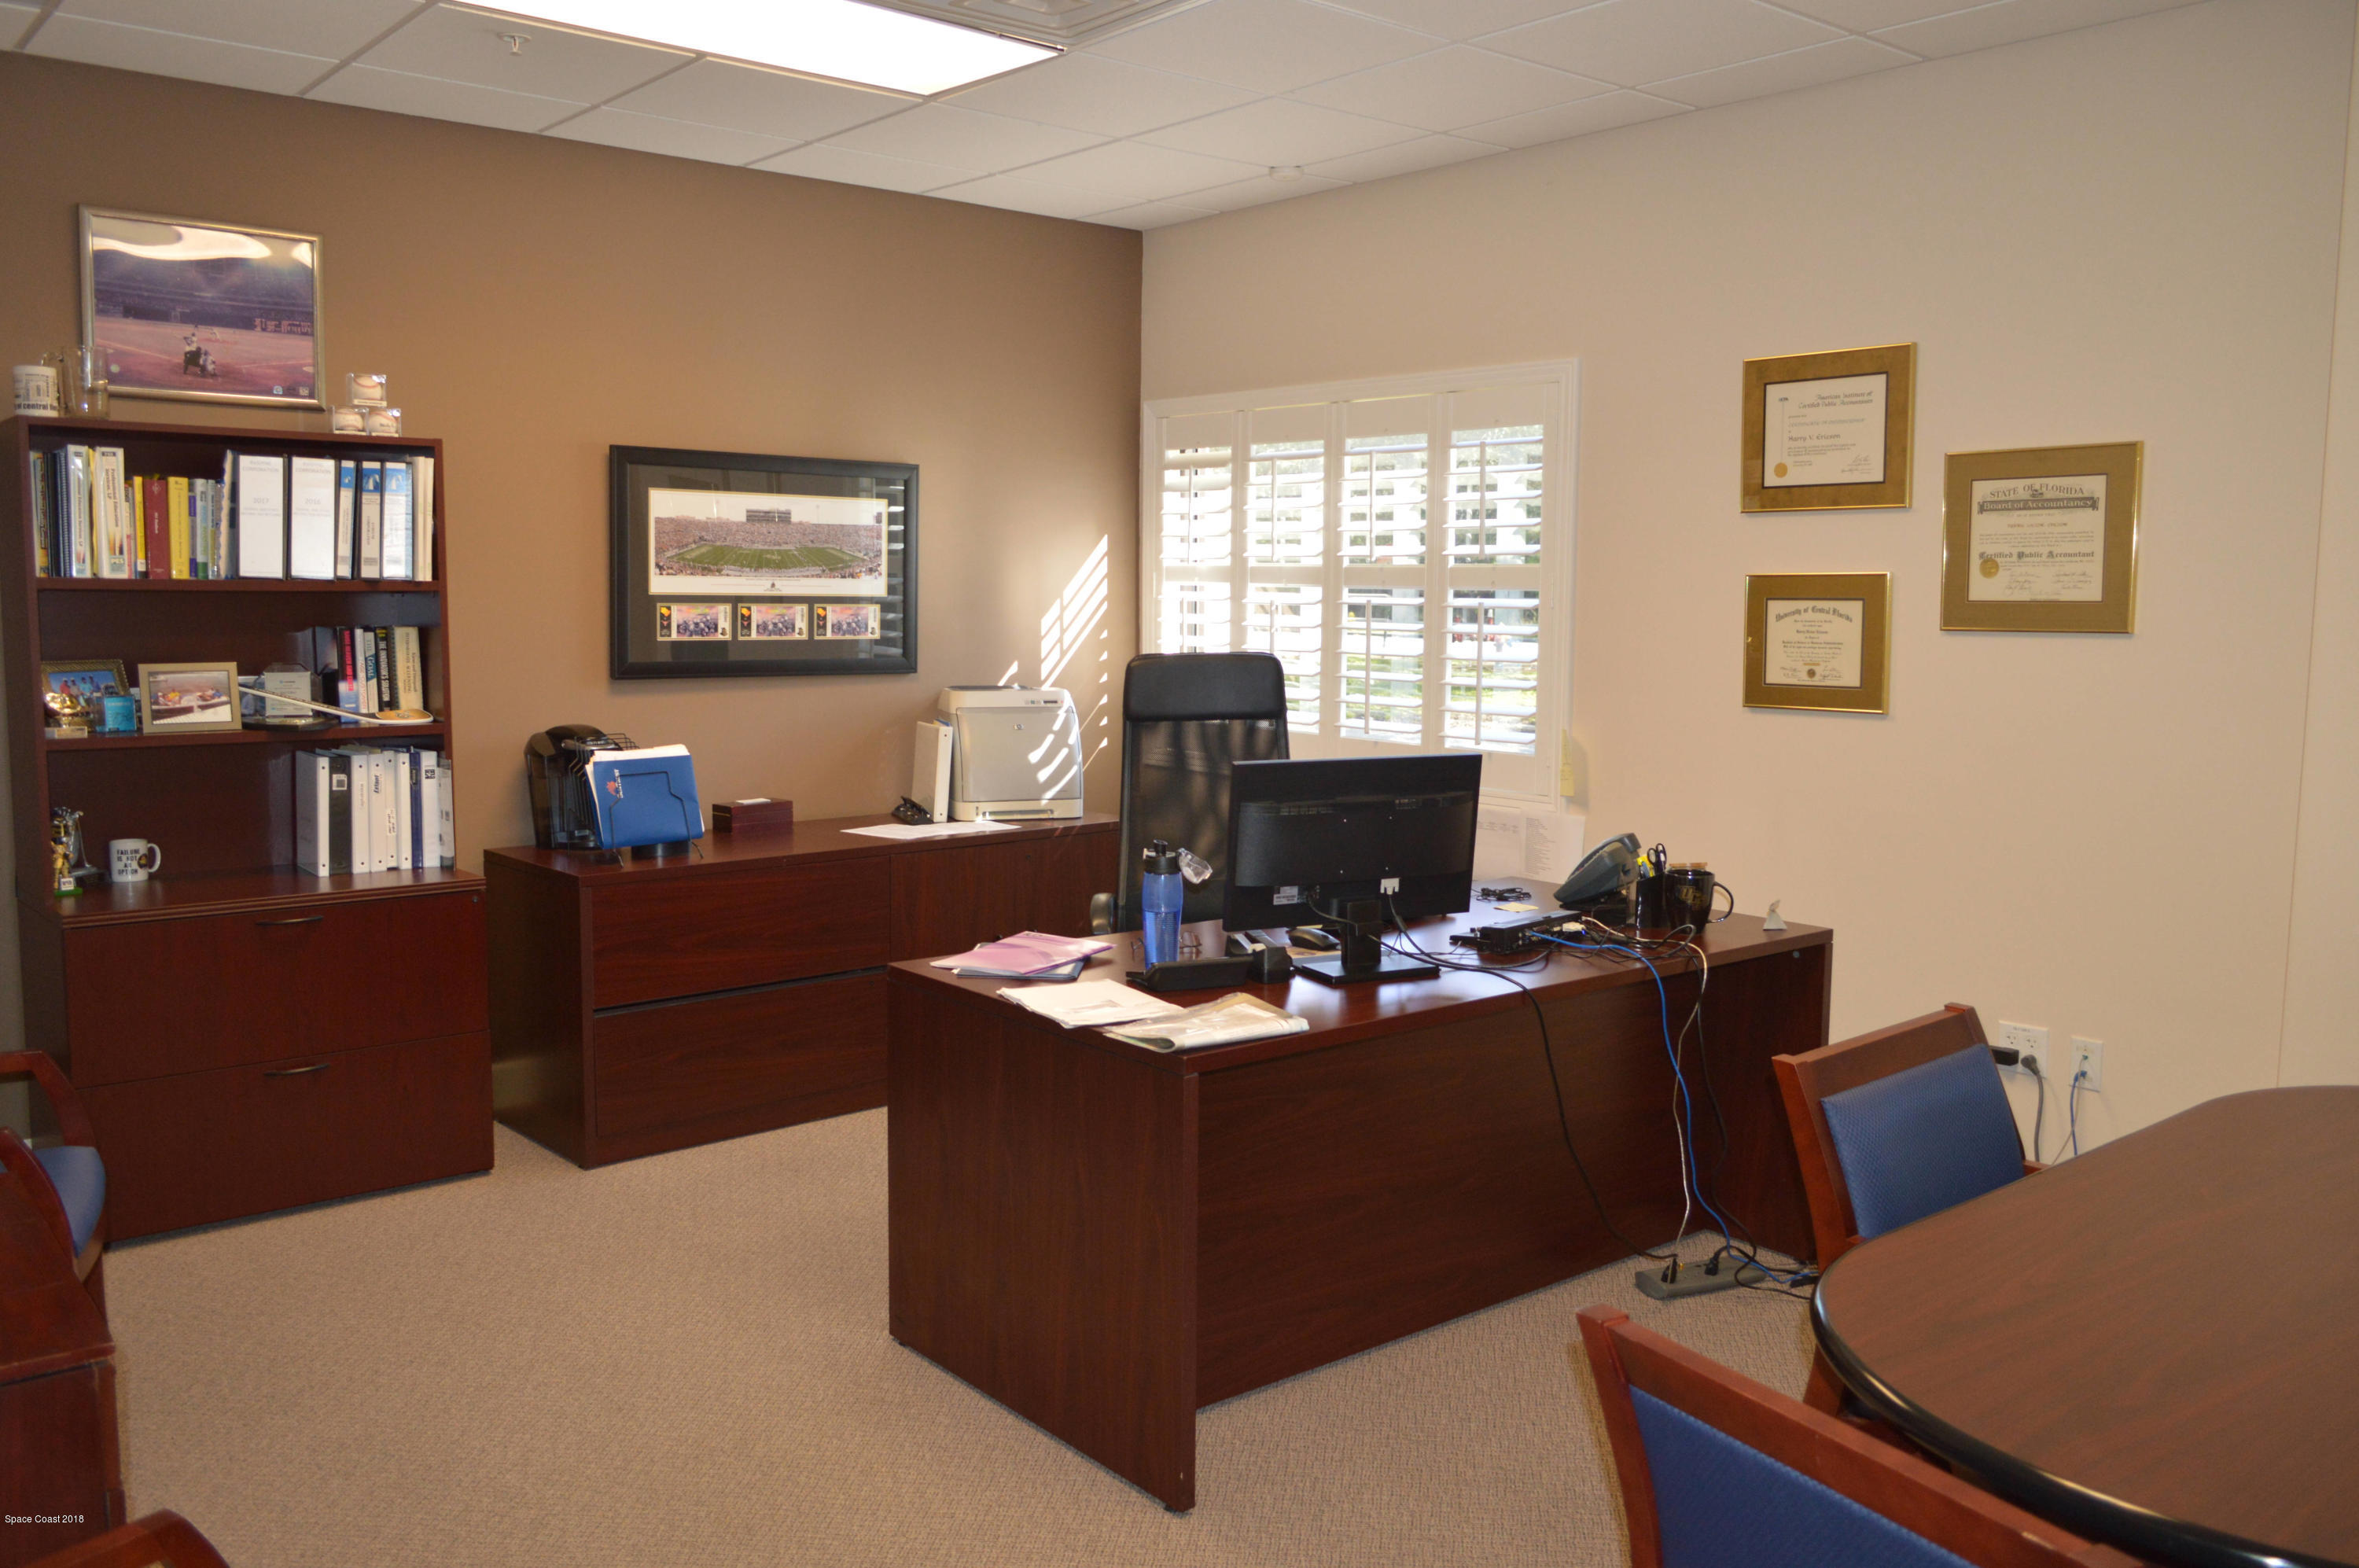 Additional photo for property listing at 710 N North Drive 710 N North Drive Melbourne, Florida 32934 United States